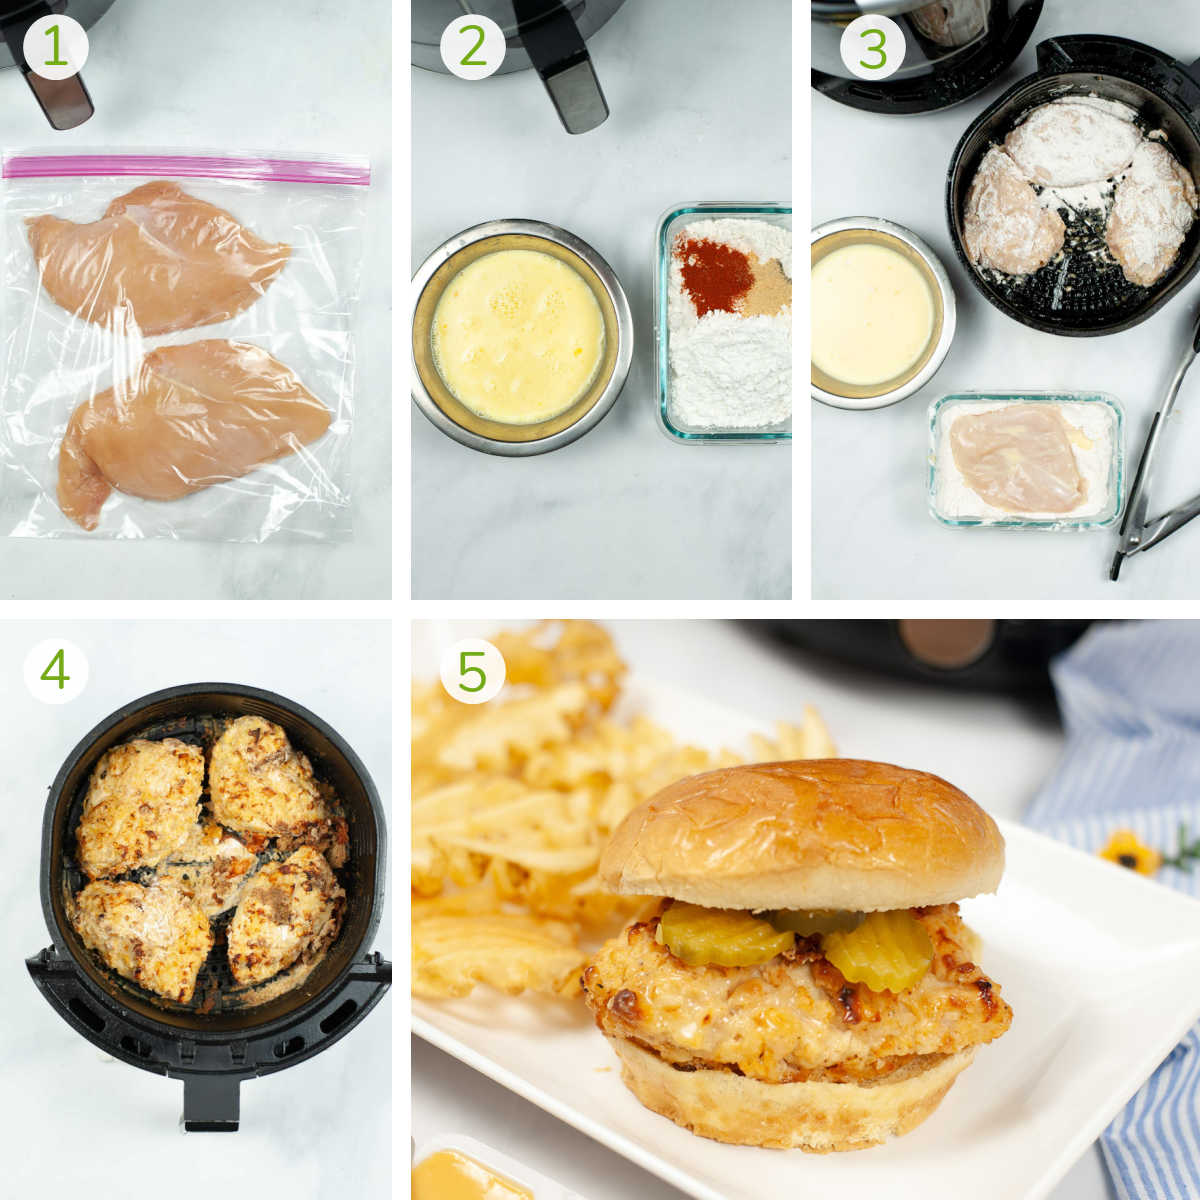 process photos showing how to make an air fryer Chick-filA sandwich.